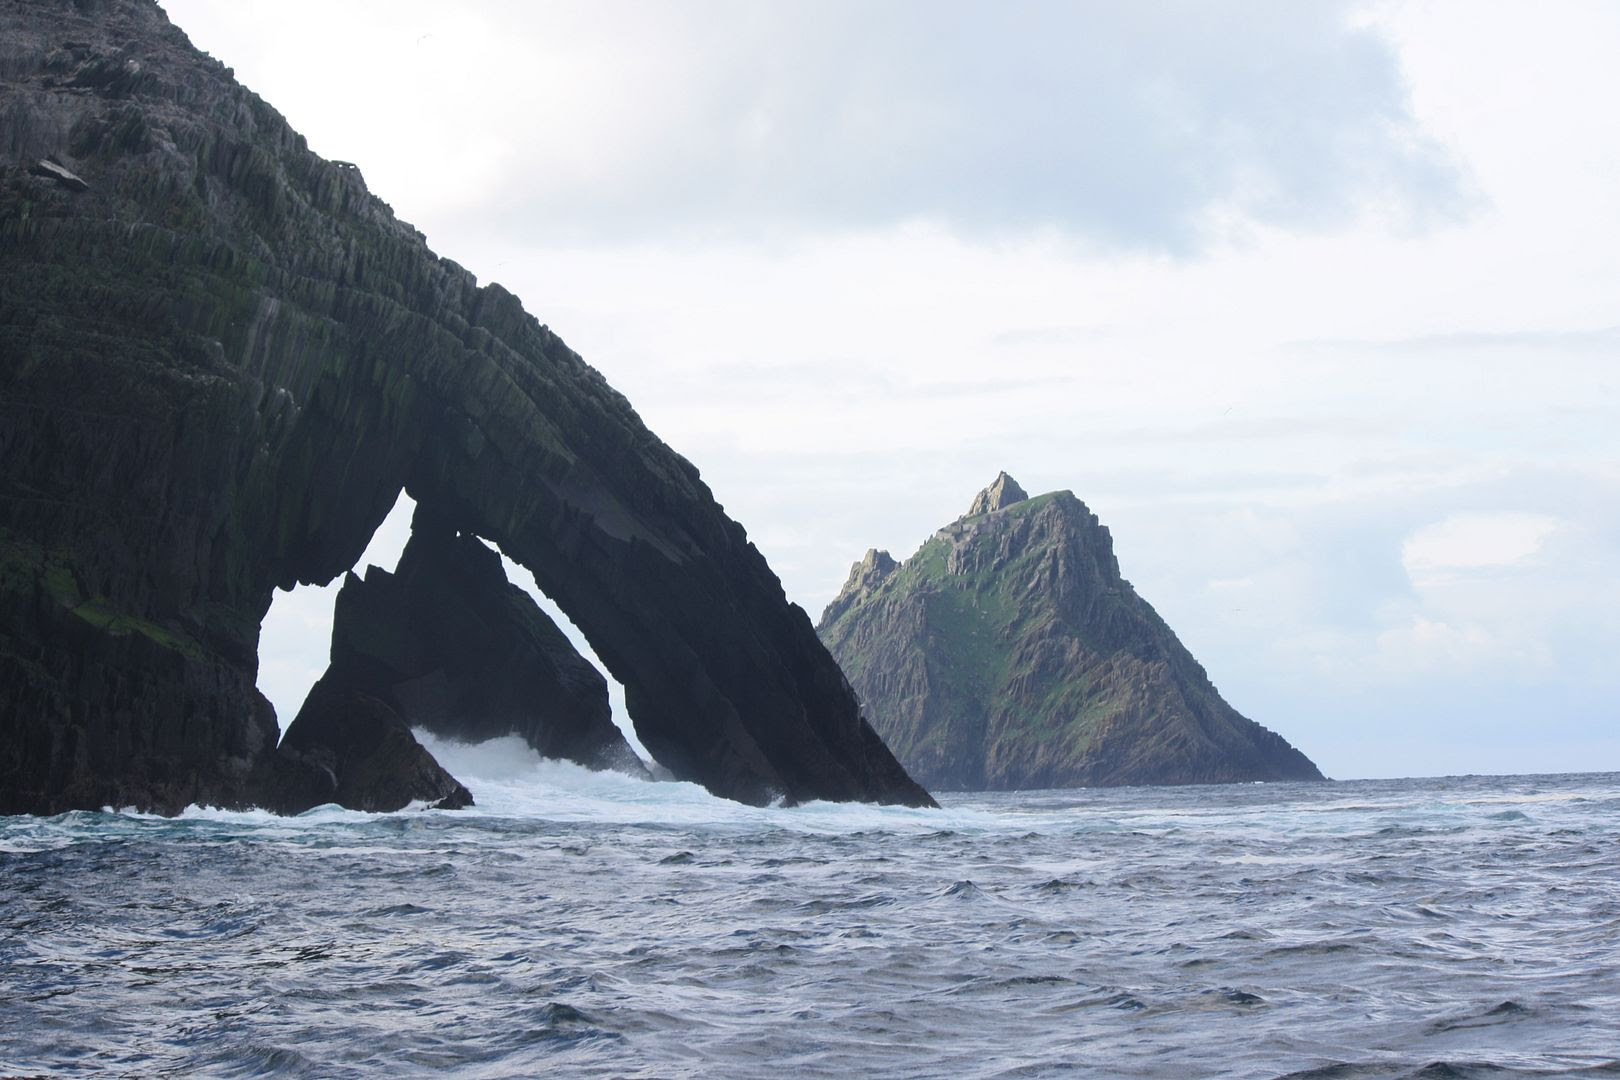 Little Skellig and Skellig Michael, Ireland photo IMG_3122_zps31r7hcke.jpg